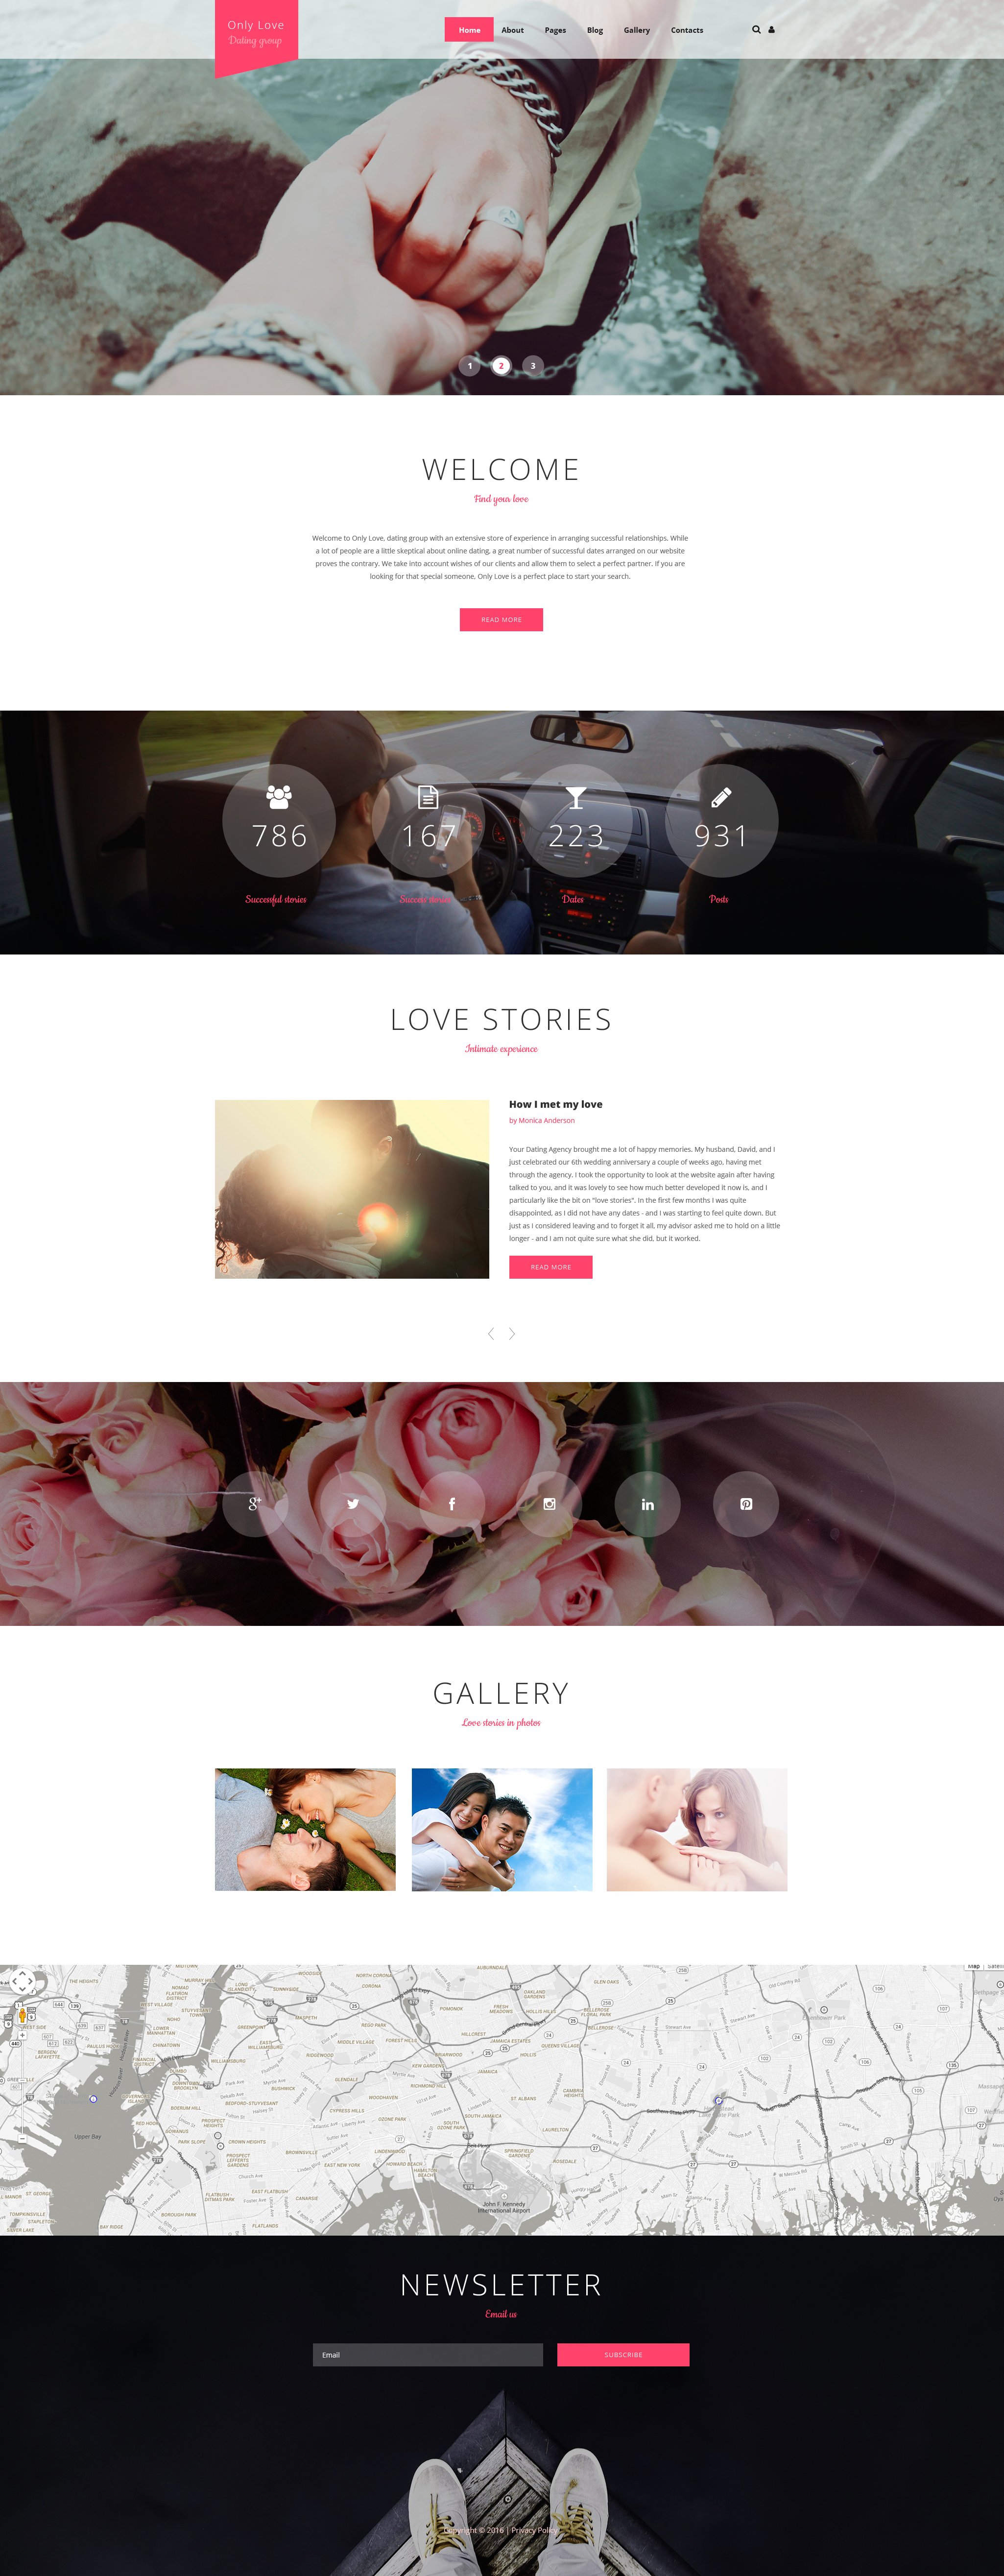 joomla templates dating free Free joomla templates, themes and layouts for your joomla installation download free joomla web templates and themes for your website at dating view (id: 3909.